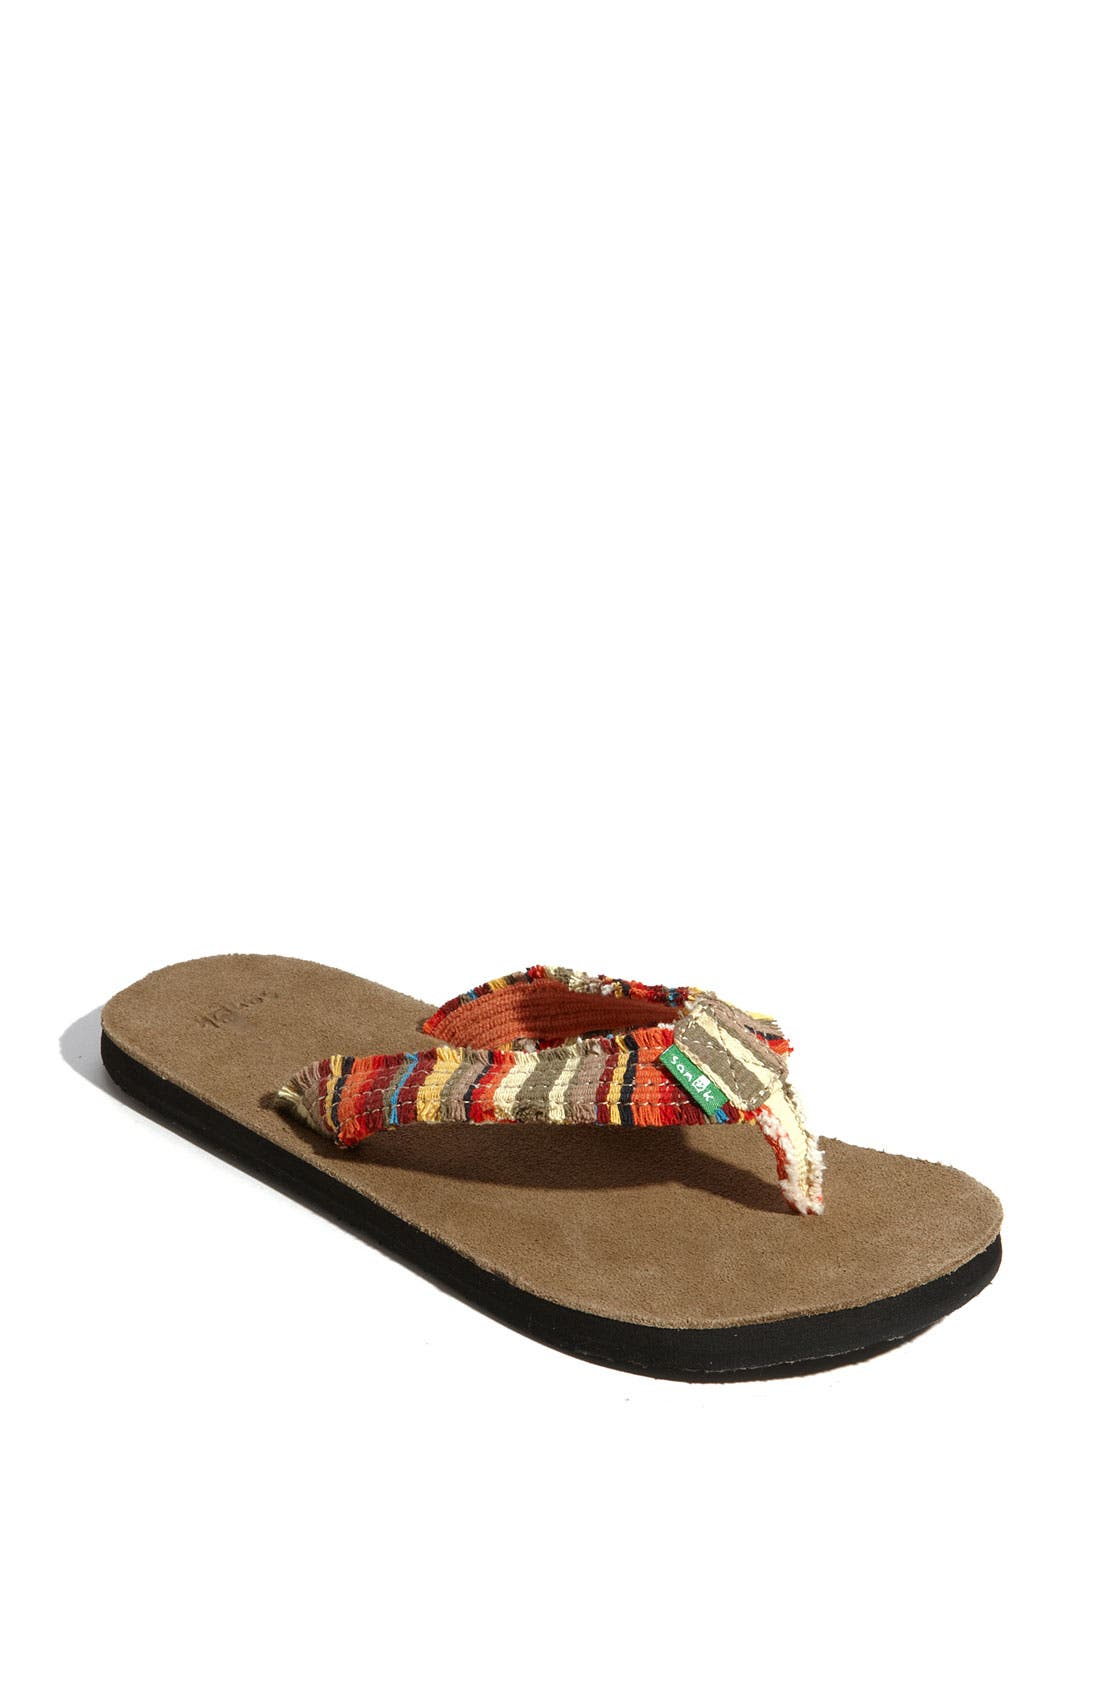 Alternate Image 1 Selected - Sanuk 'Fraidy Cat' Flip Flop (Women)